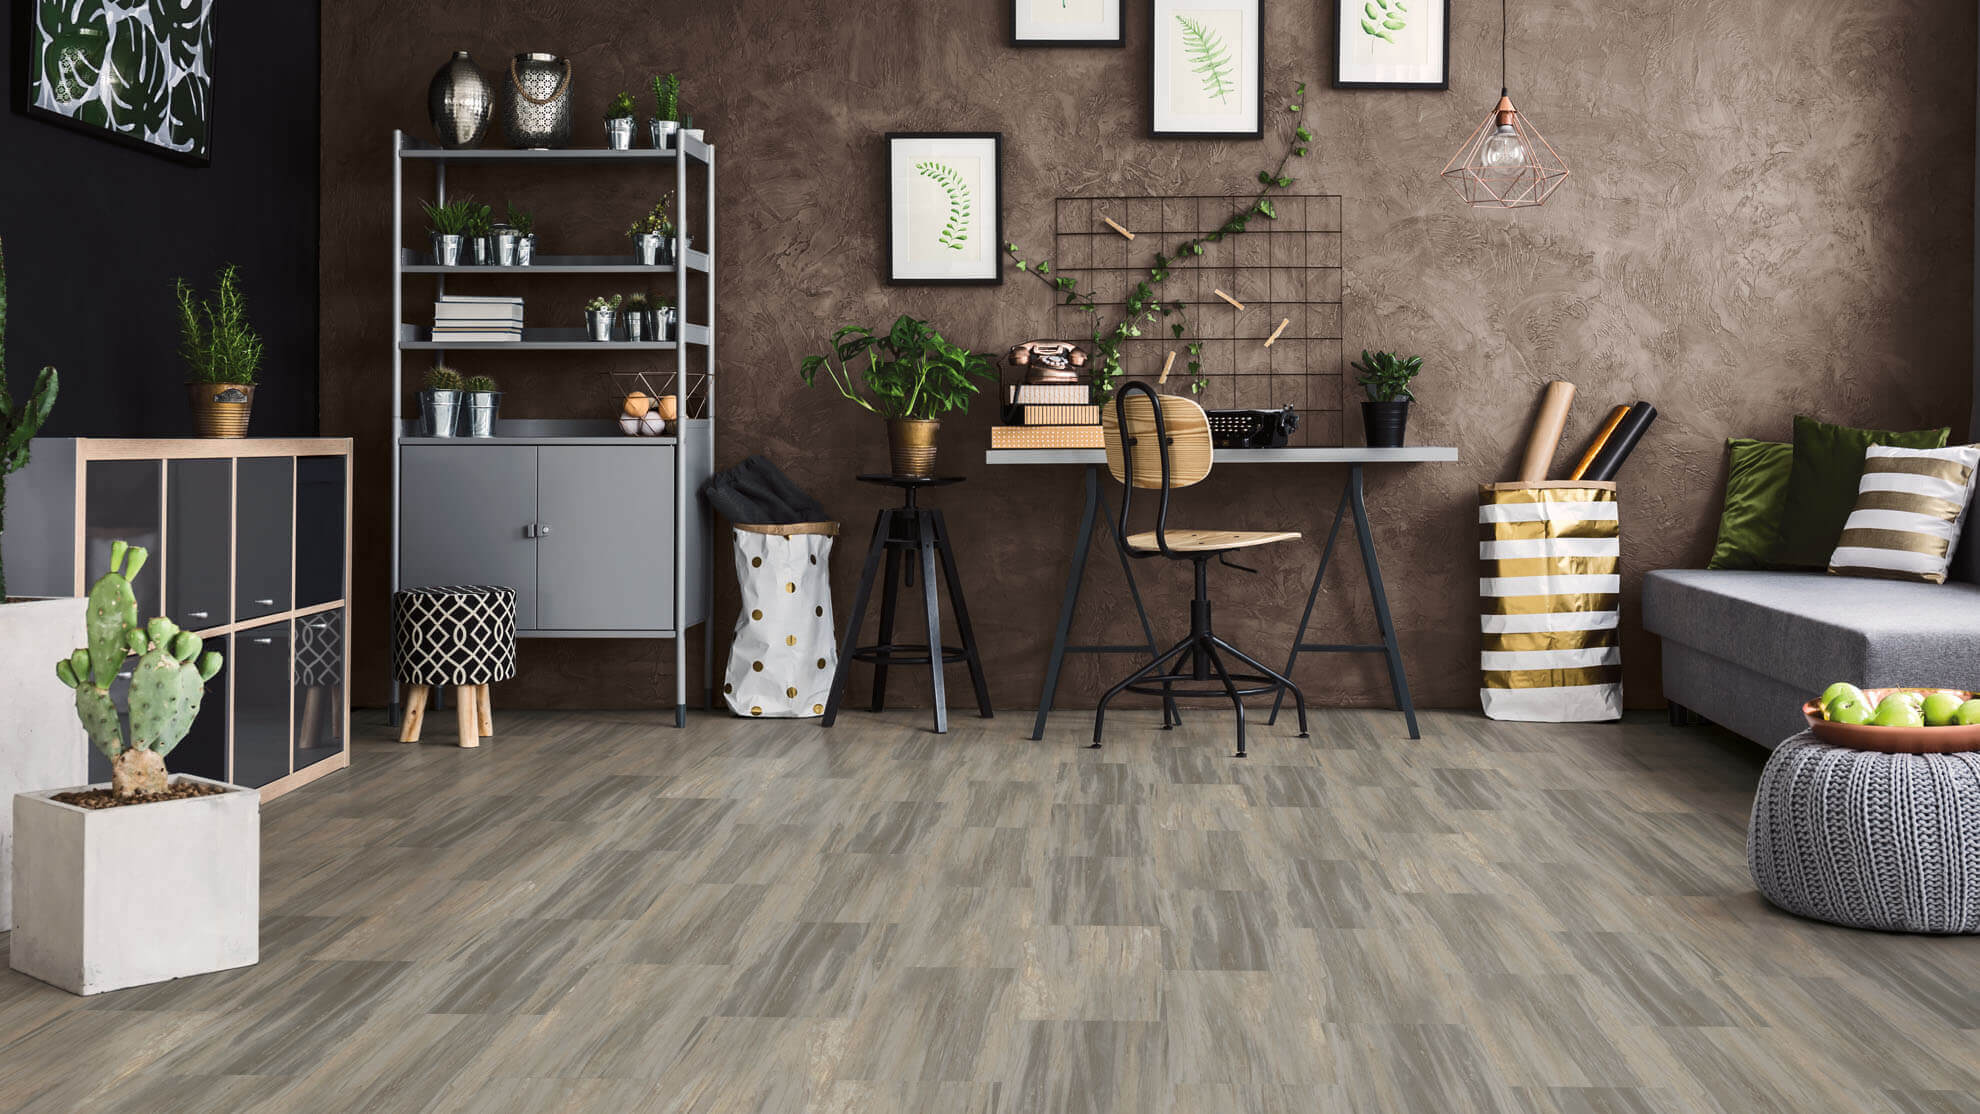 Earthwerks flooring parkhill tile pkt 371 dailygadgetfo Image collections